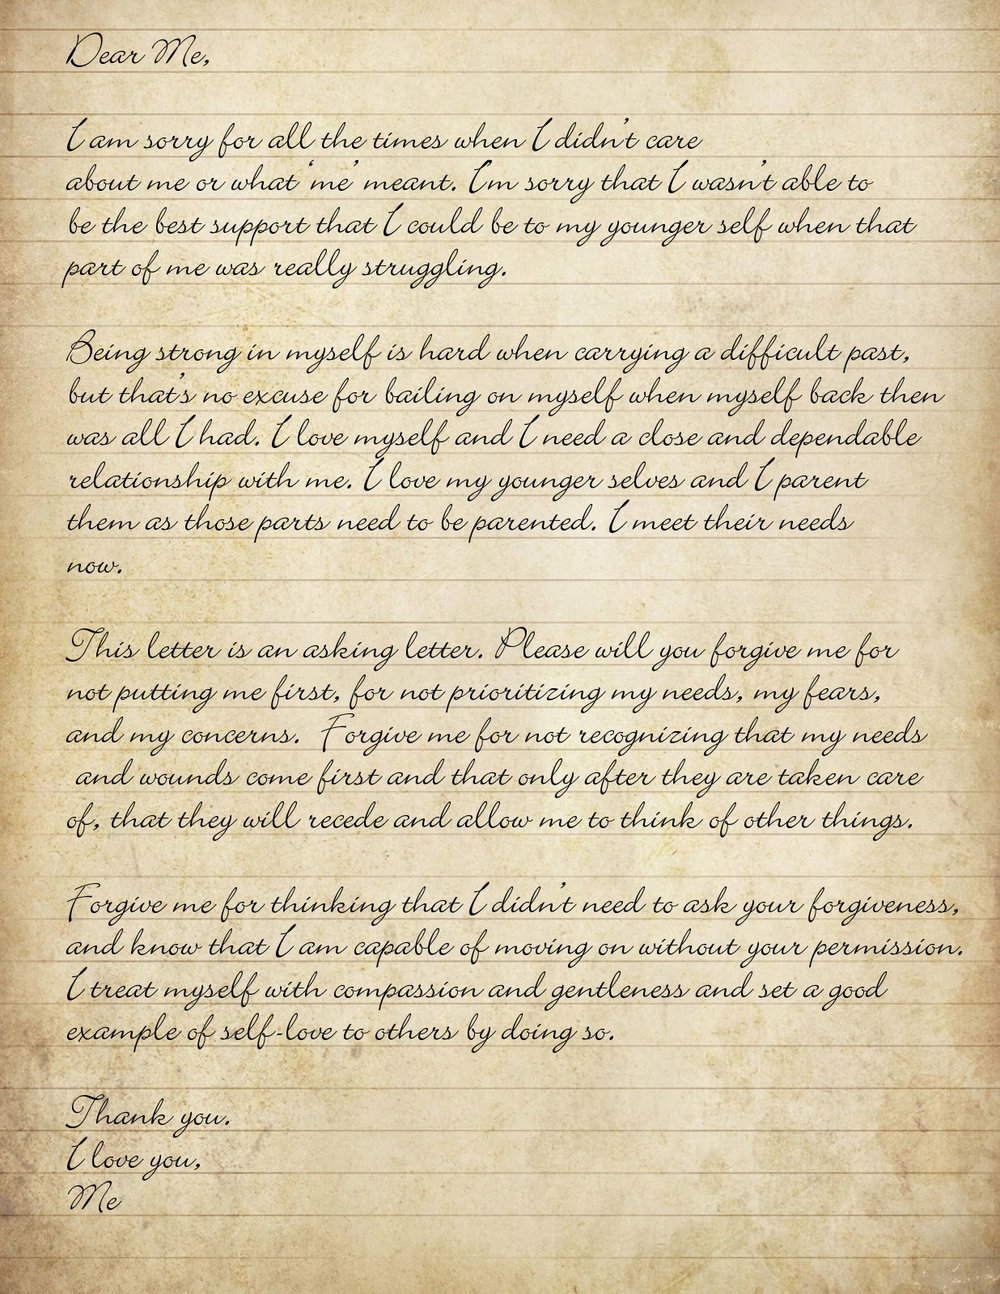 letter asking for forgiveness a forgiveness letter to yourself suzanne connolly 17541 | antiqued lined paper background 16